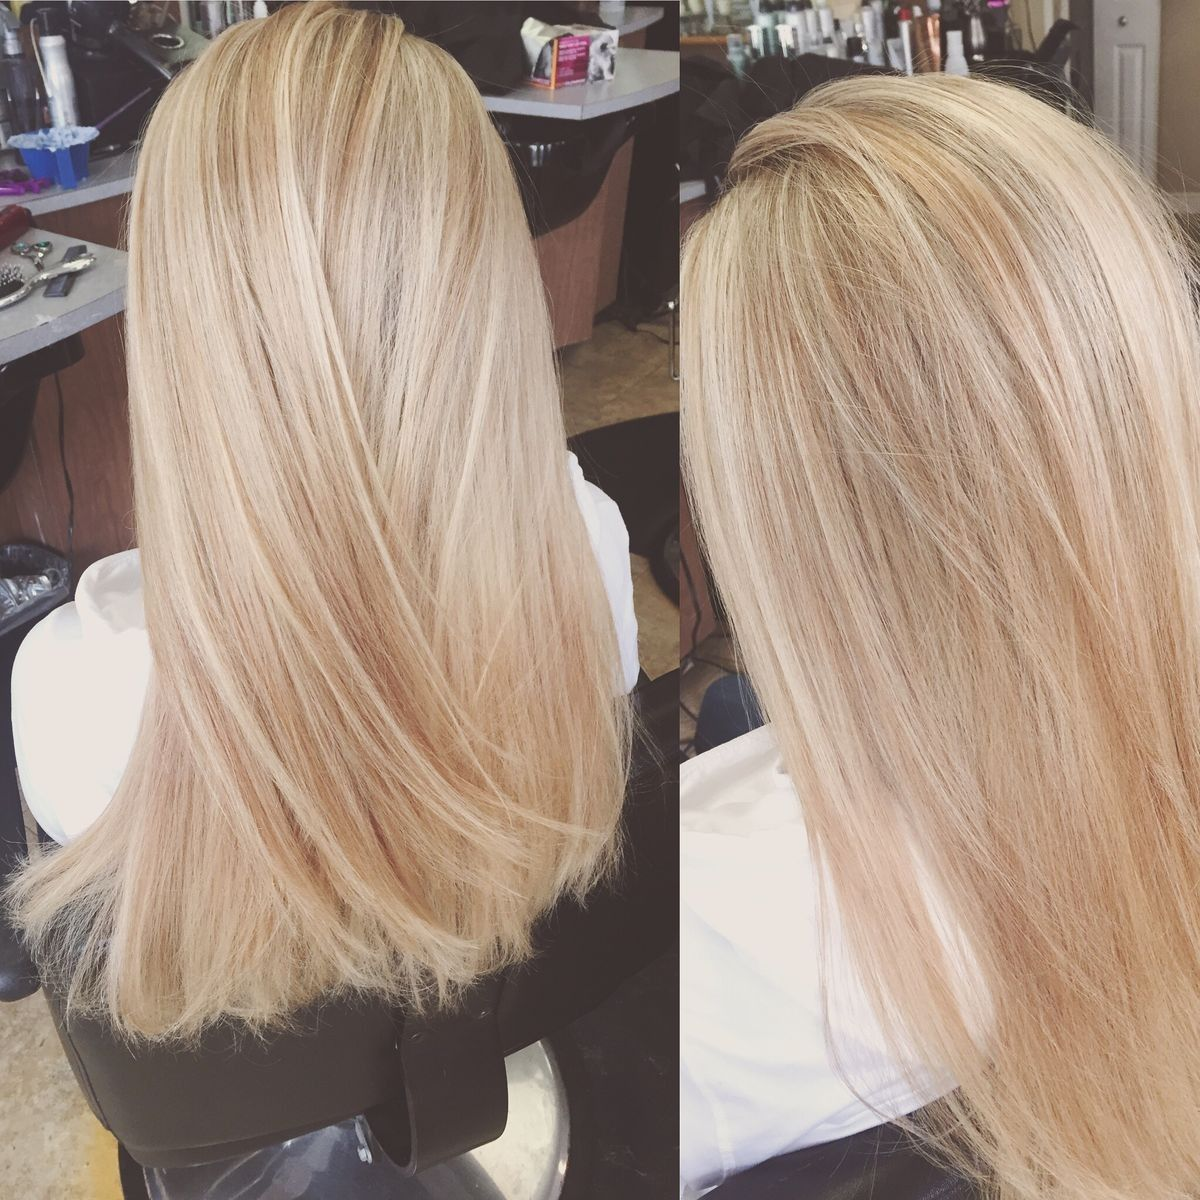 Lace Front Wigs For Black Women Silver Hair With Purple Highlights Kids Blond Wig Long Blonde Ombre Wig